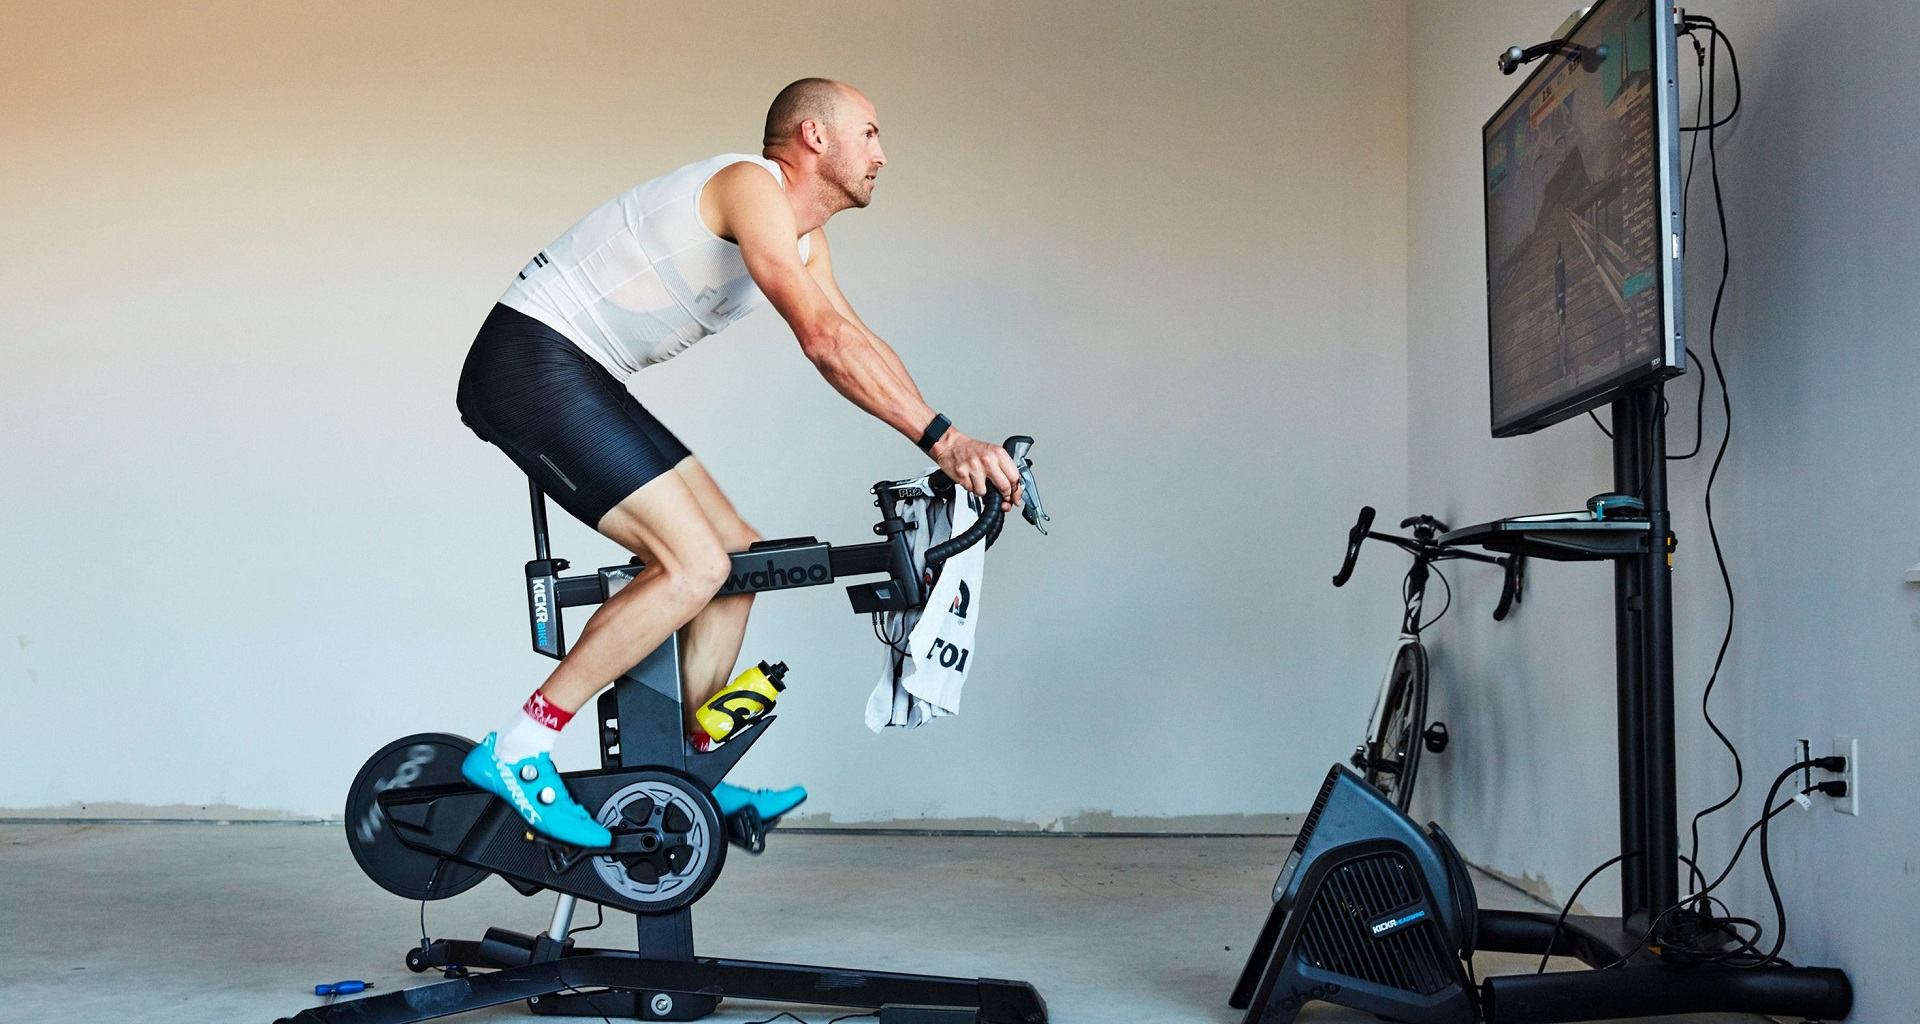 Accessories For Your Spin Bike Sessions